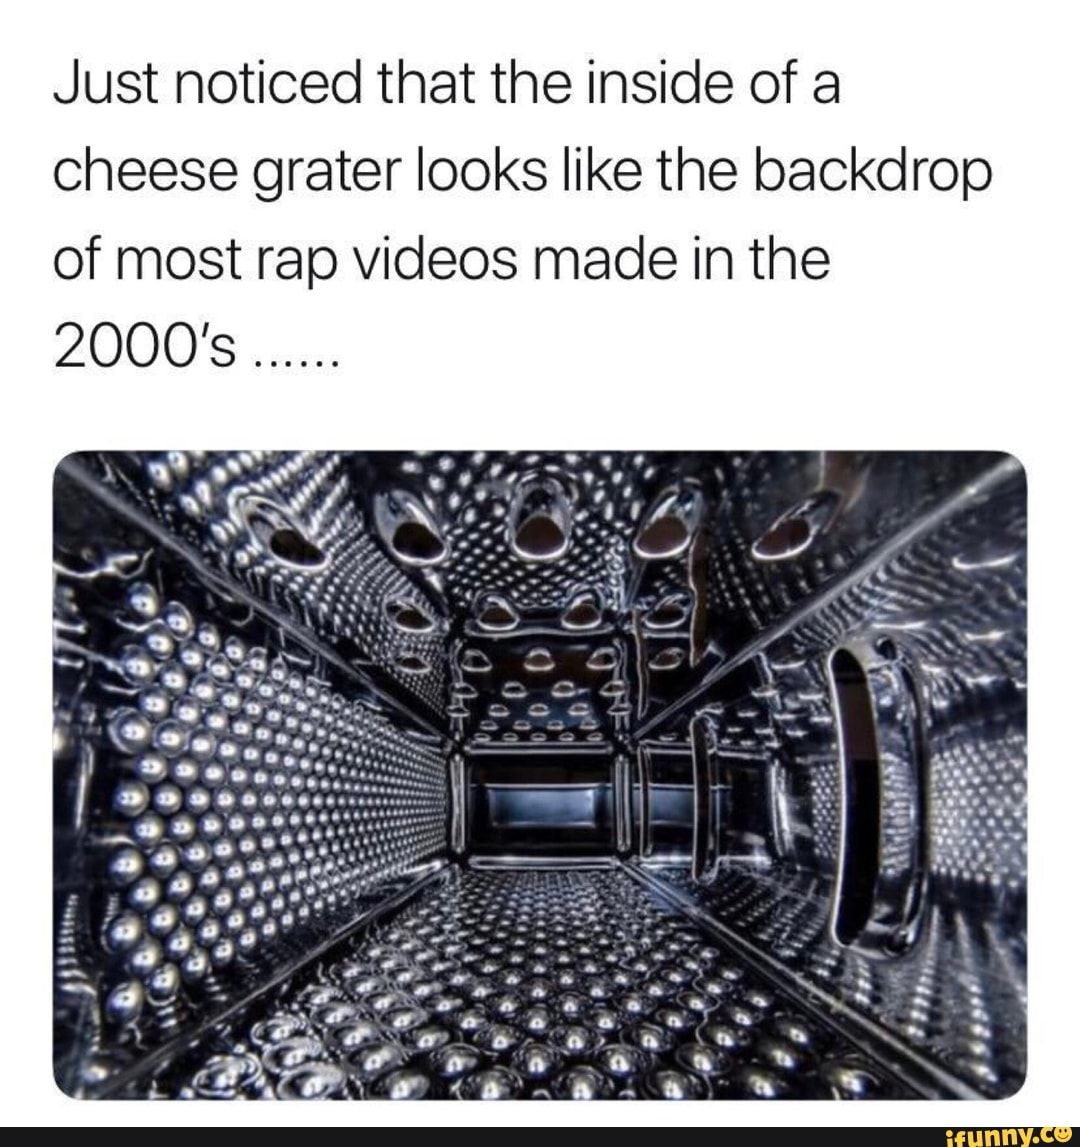 Just noticed that the inside of a cheese grater looks like the backdrop of most rap videos made in the 2000's ...... – popular memes on the site iFunny.co #music #artcreative #just #noticed #cheese #grater #looks #backdrop #rap #videos #made #pic